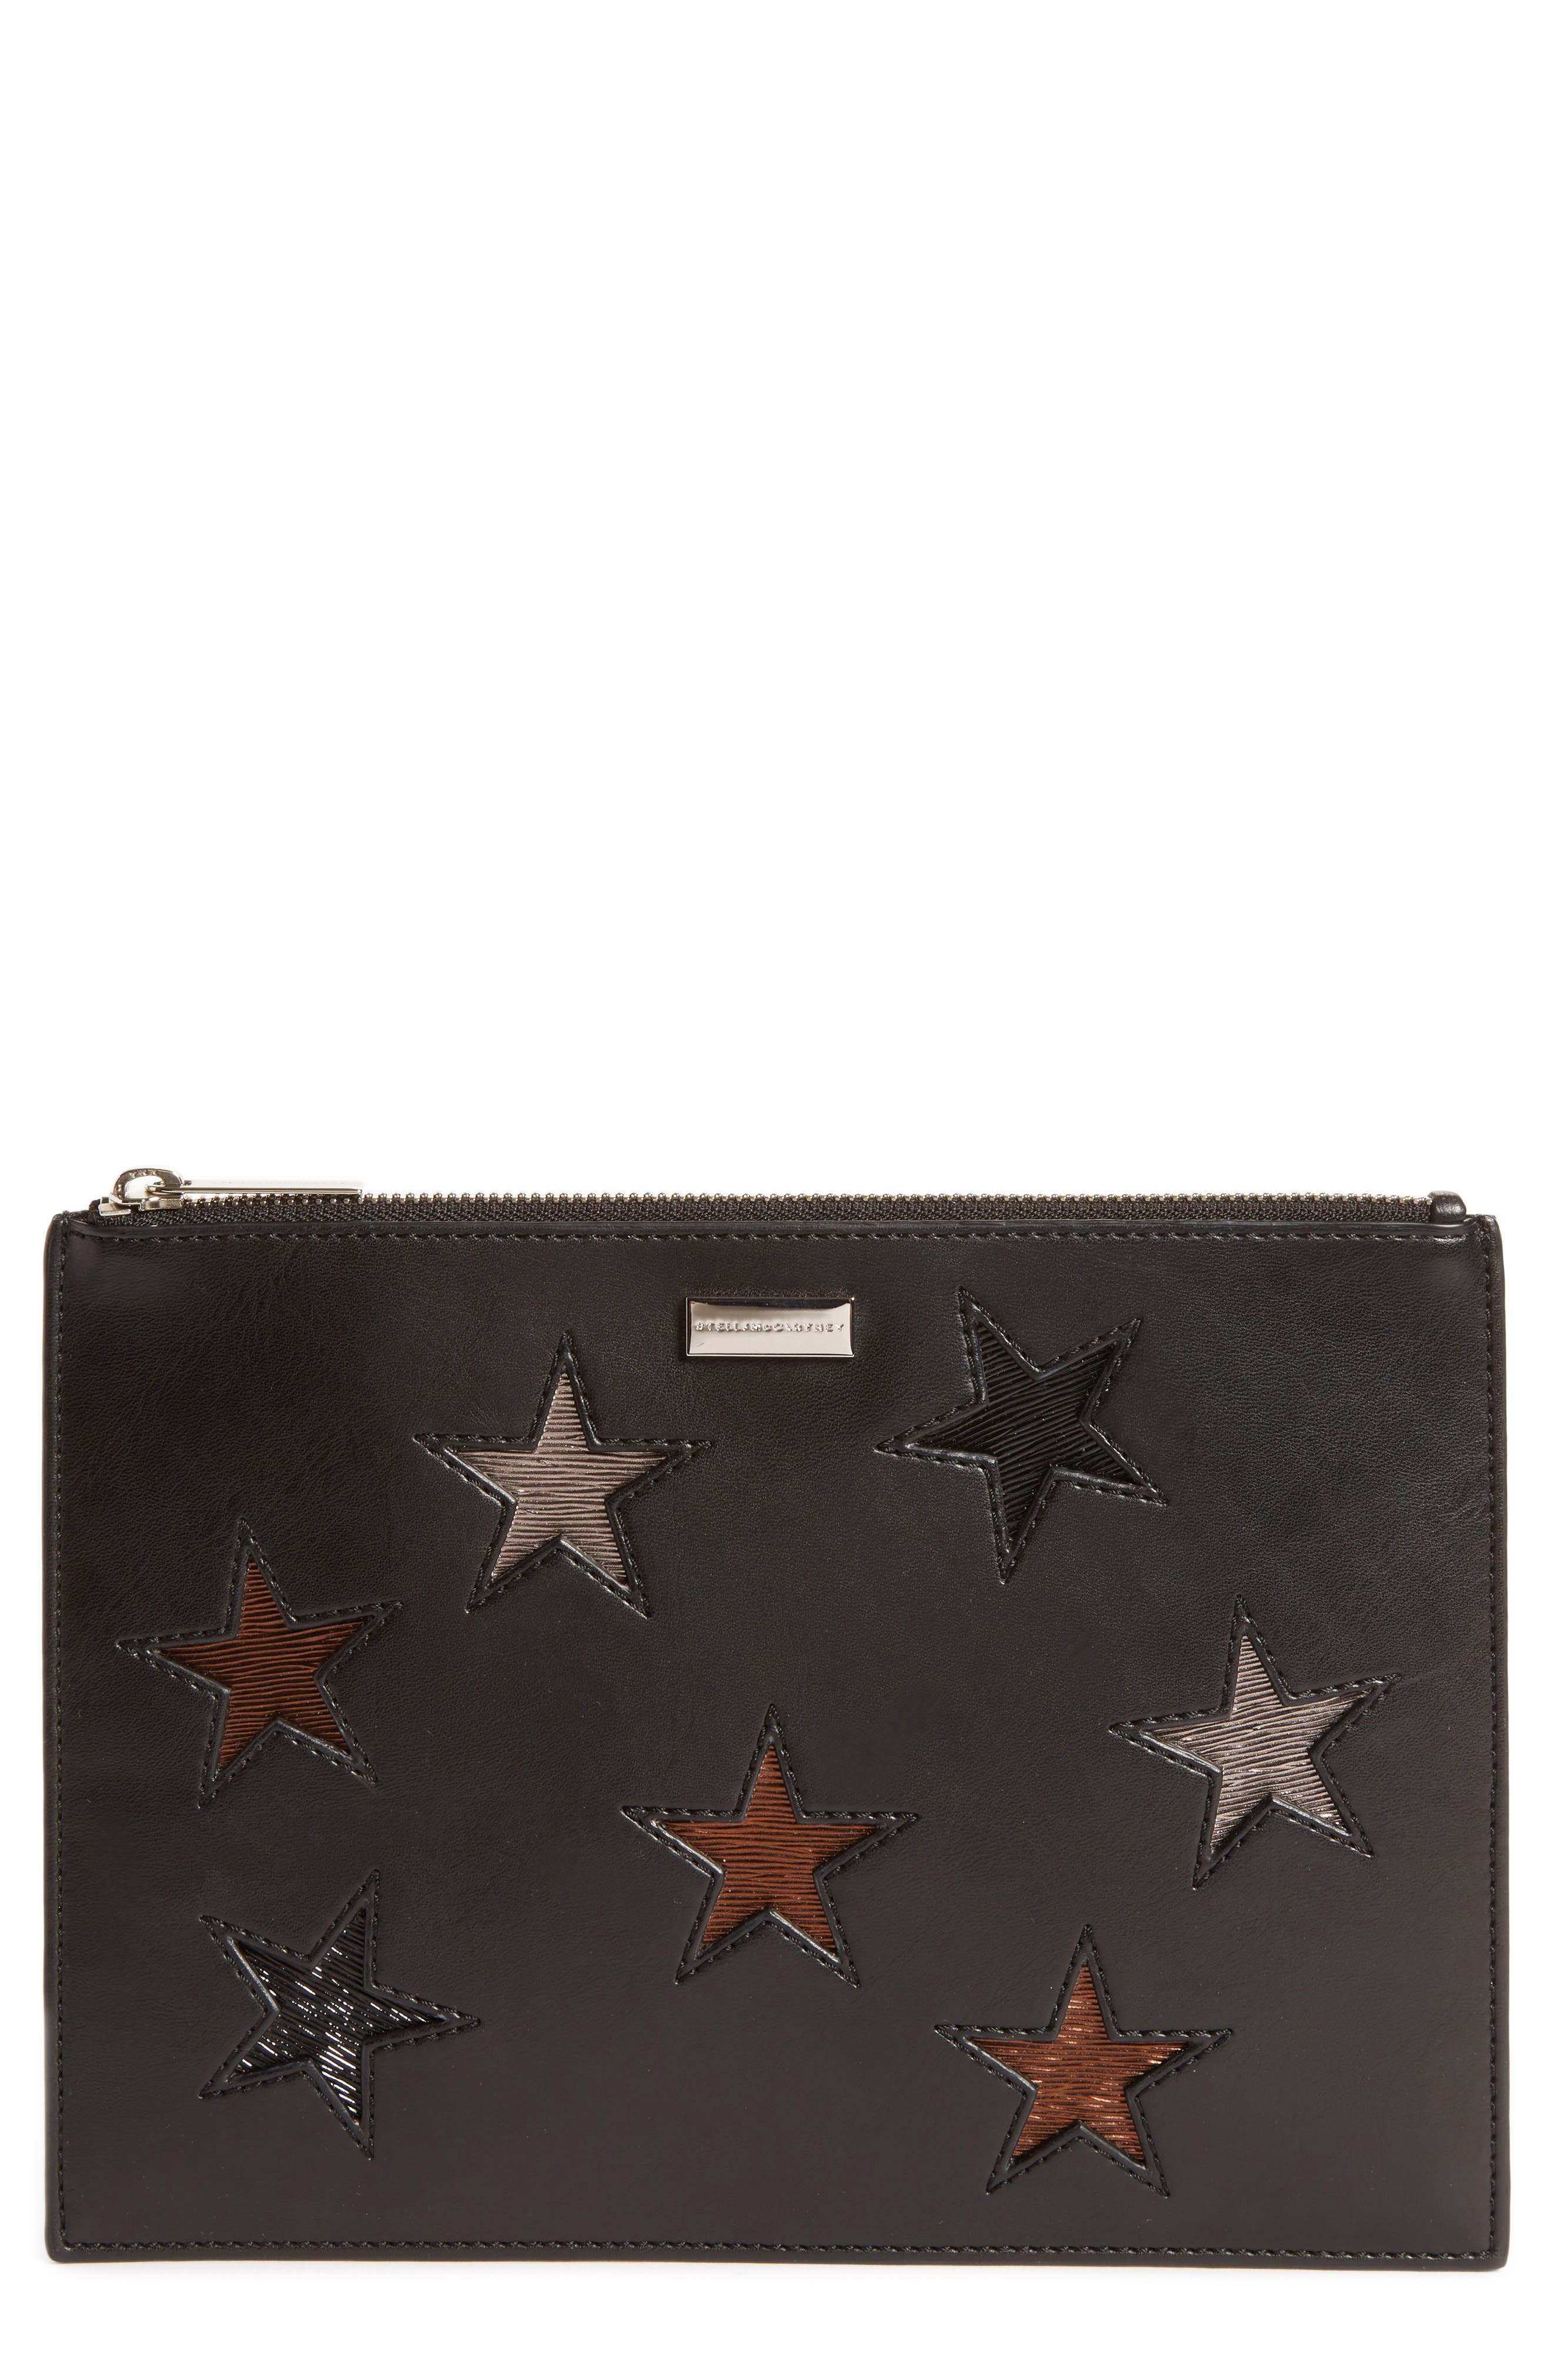 Main Image - Stella McCartney Falabella Star Inset Faux Leather Zip Pouch